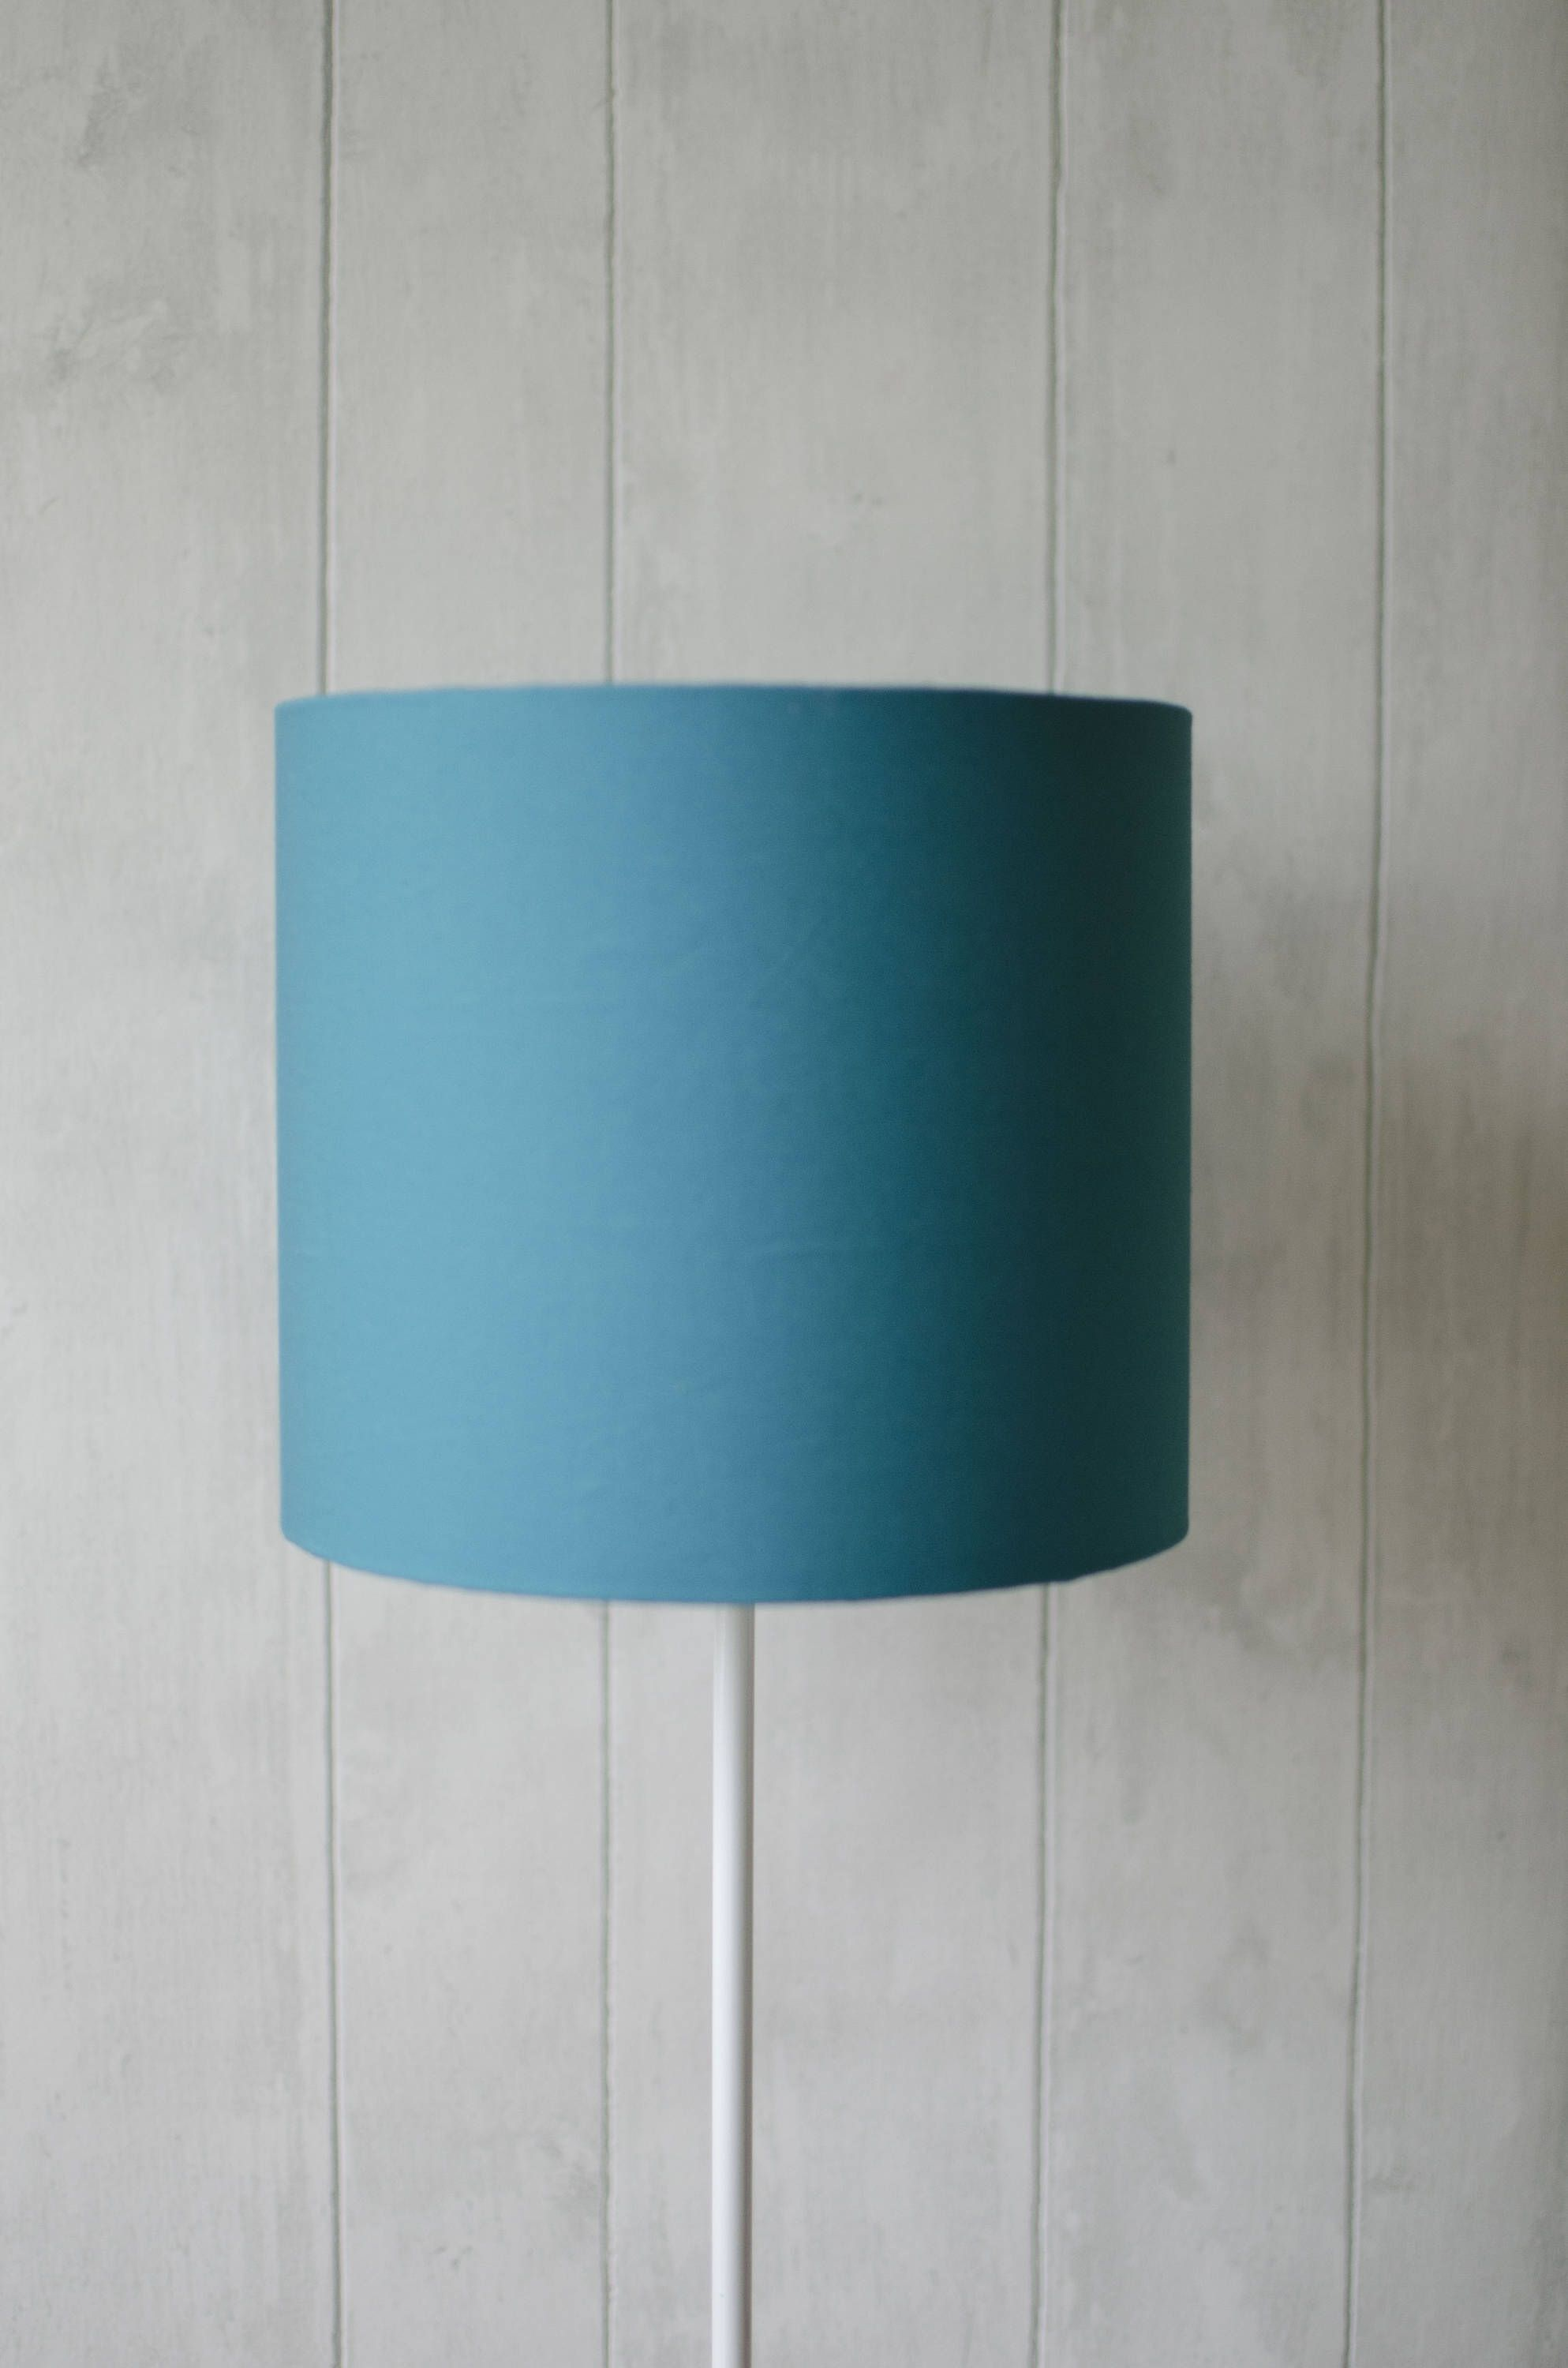 Turquoise Lamp Shade Turquoise Home Decor Simple Lamp Plain Lamp Shade Small Lampshade Table Lamp Shade M Turquoise Lamp Shade Turquoise Lamp Simple Lamp